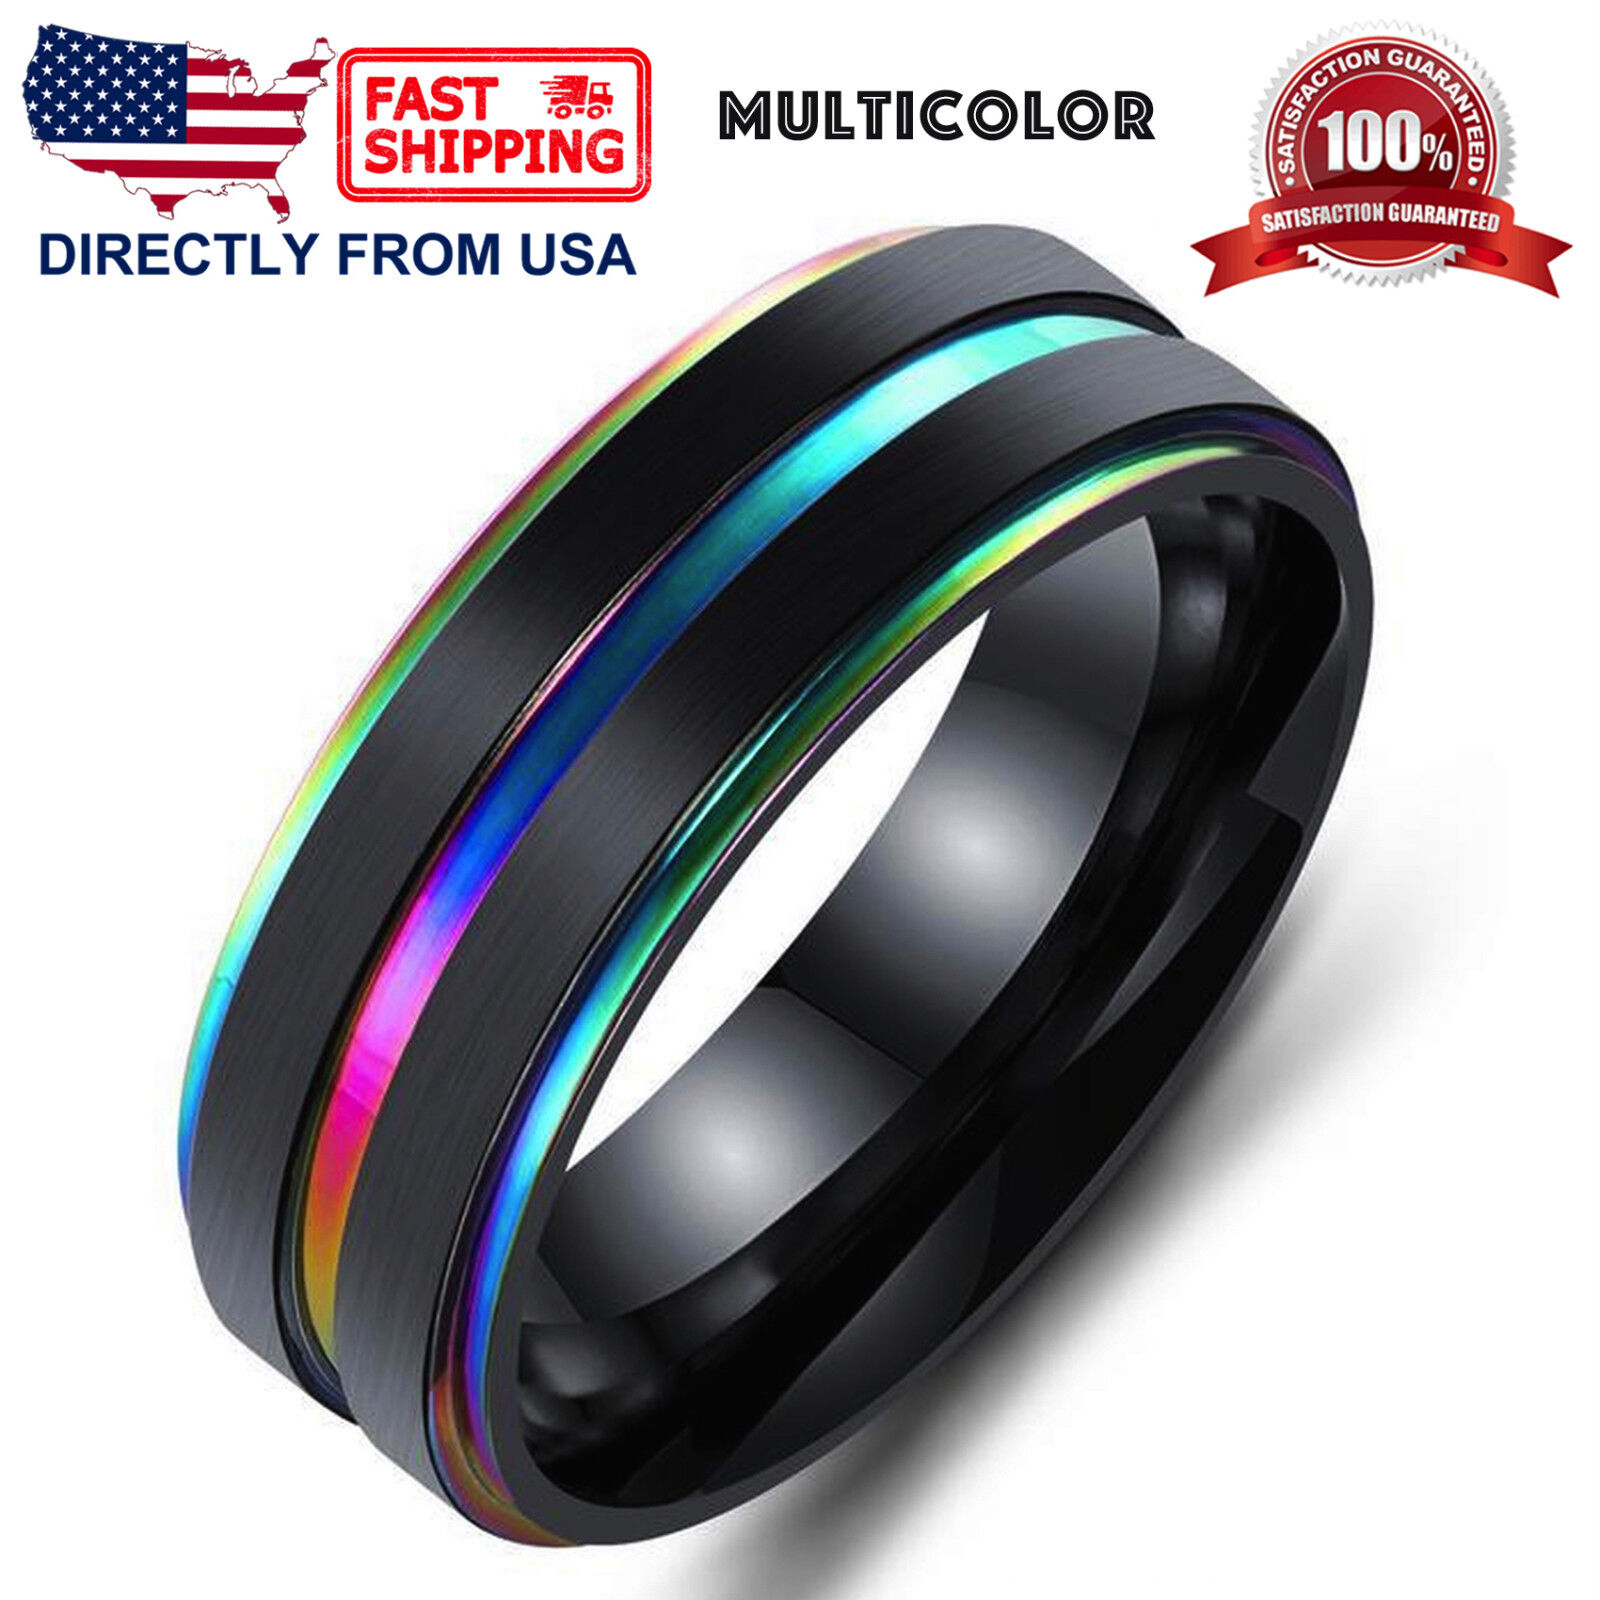 Men's Stainless Steel Ring, 7mm Ridged Edge Comfort Fit Wedding Band Jewelry & Watches